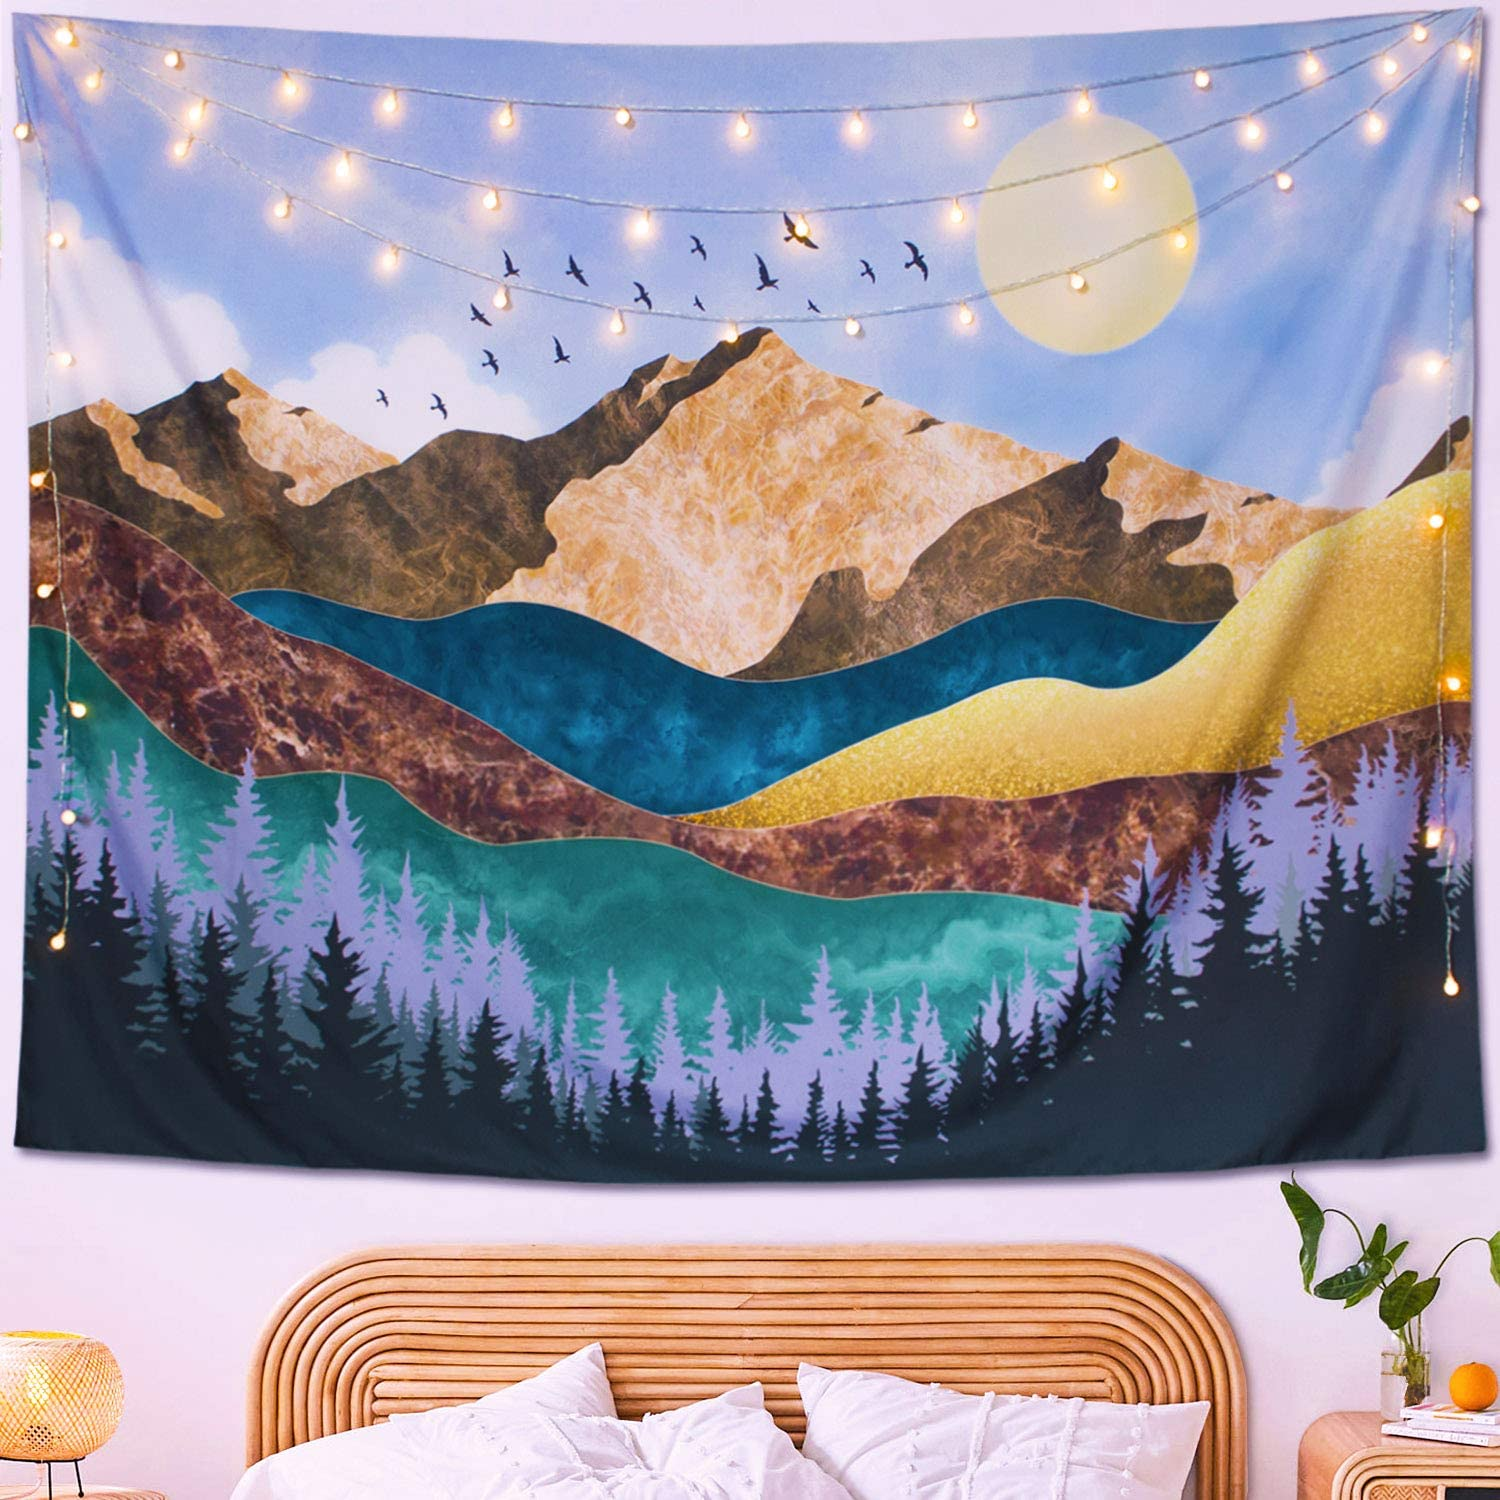 Neasow Mountain Moon Bohemian Tapestry Wall Hanging Tree Forest Nature Landscape Art Tapestries Boho Home Decor Blanket For Room Sunrise Blue 60 80 Inches Everything Else